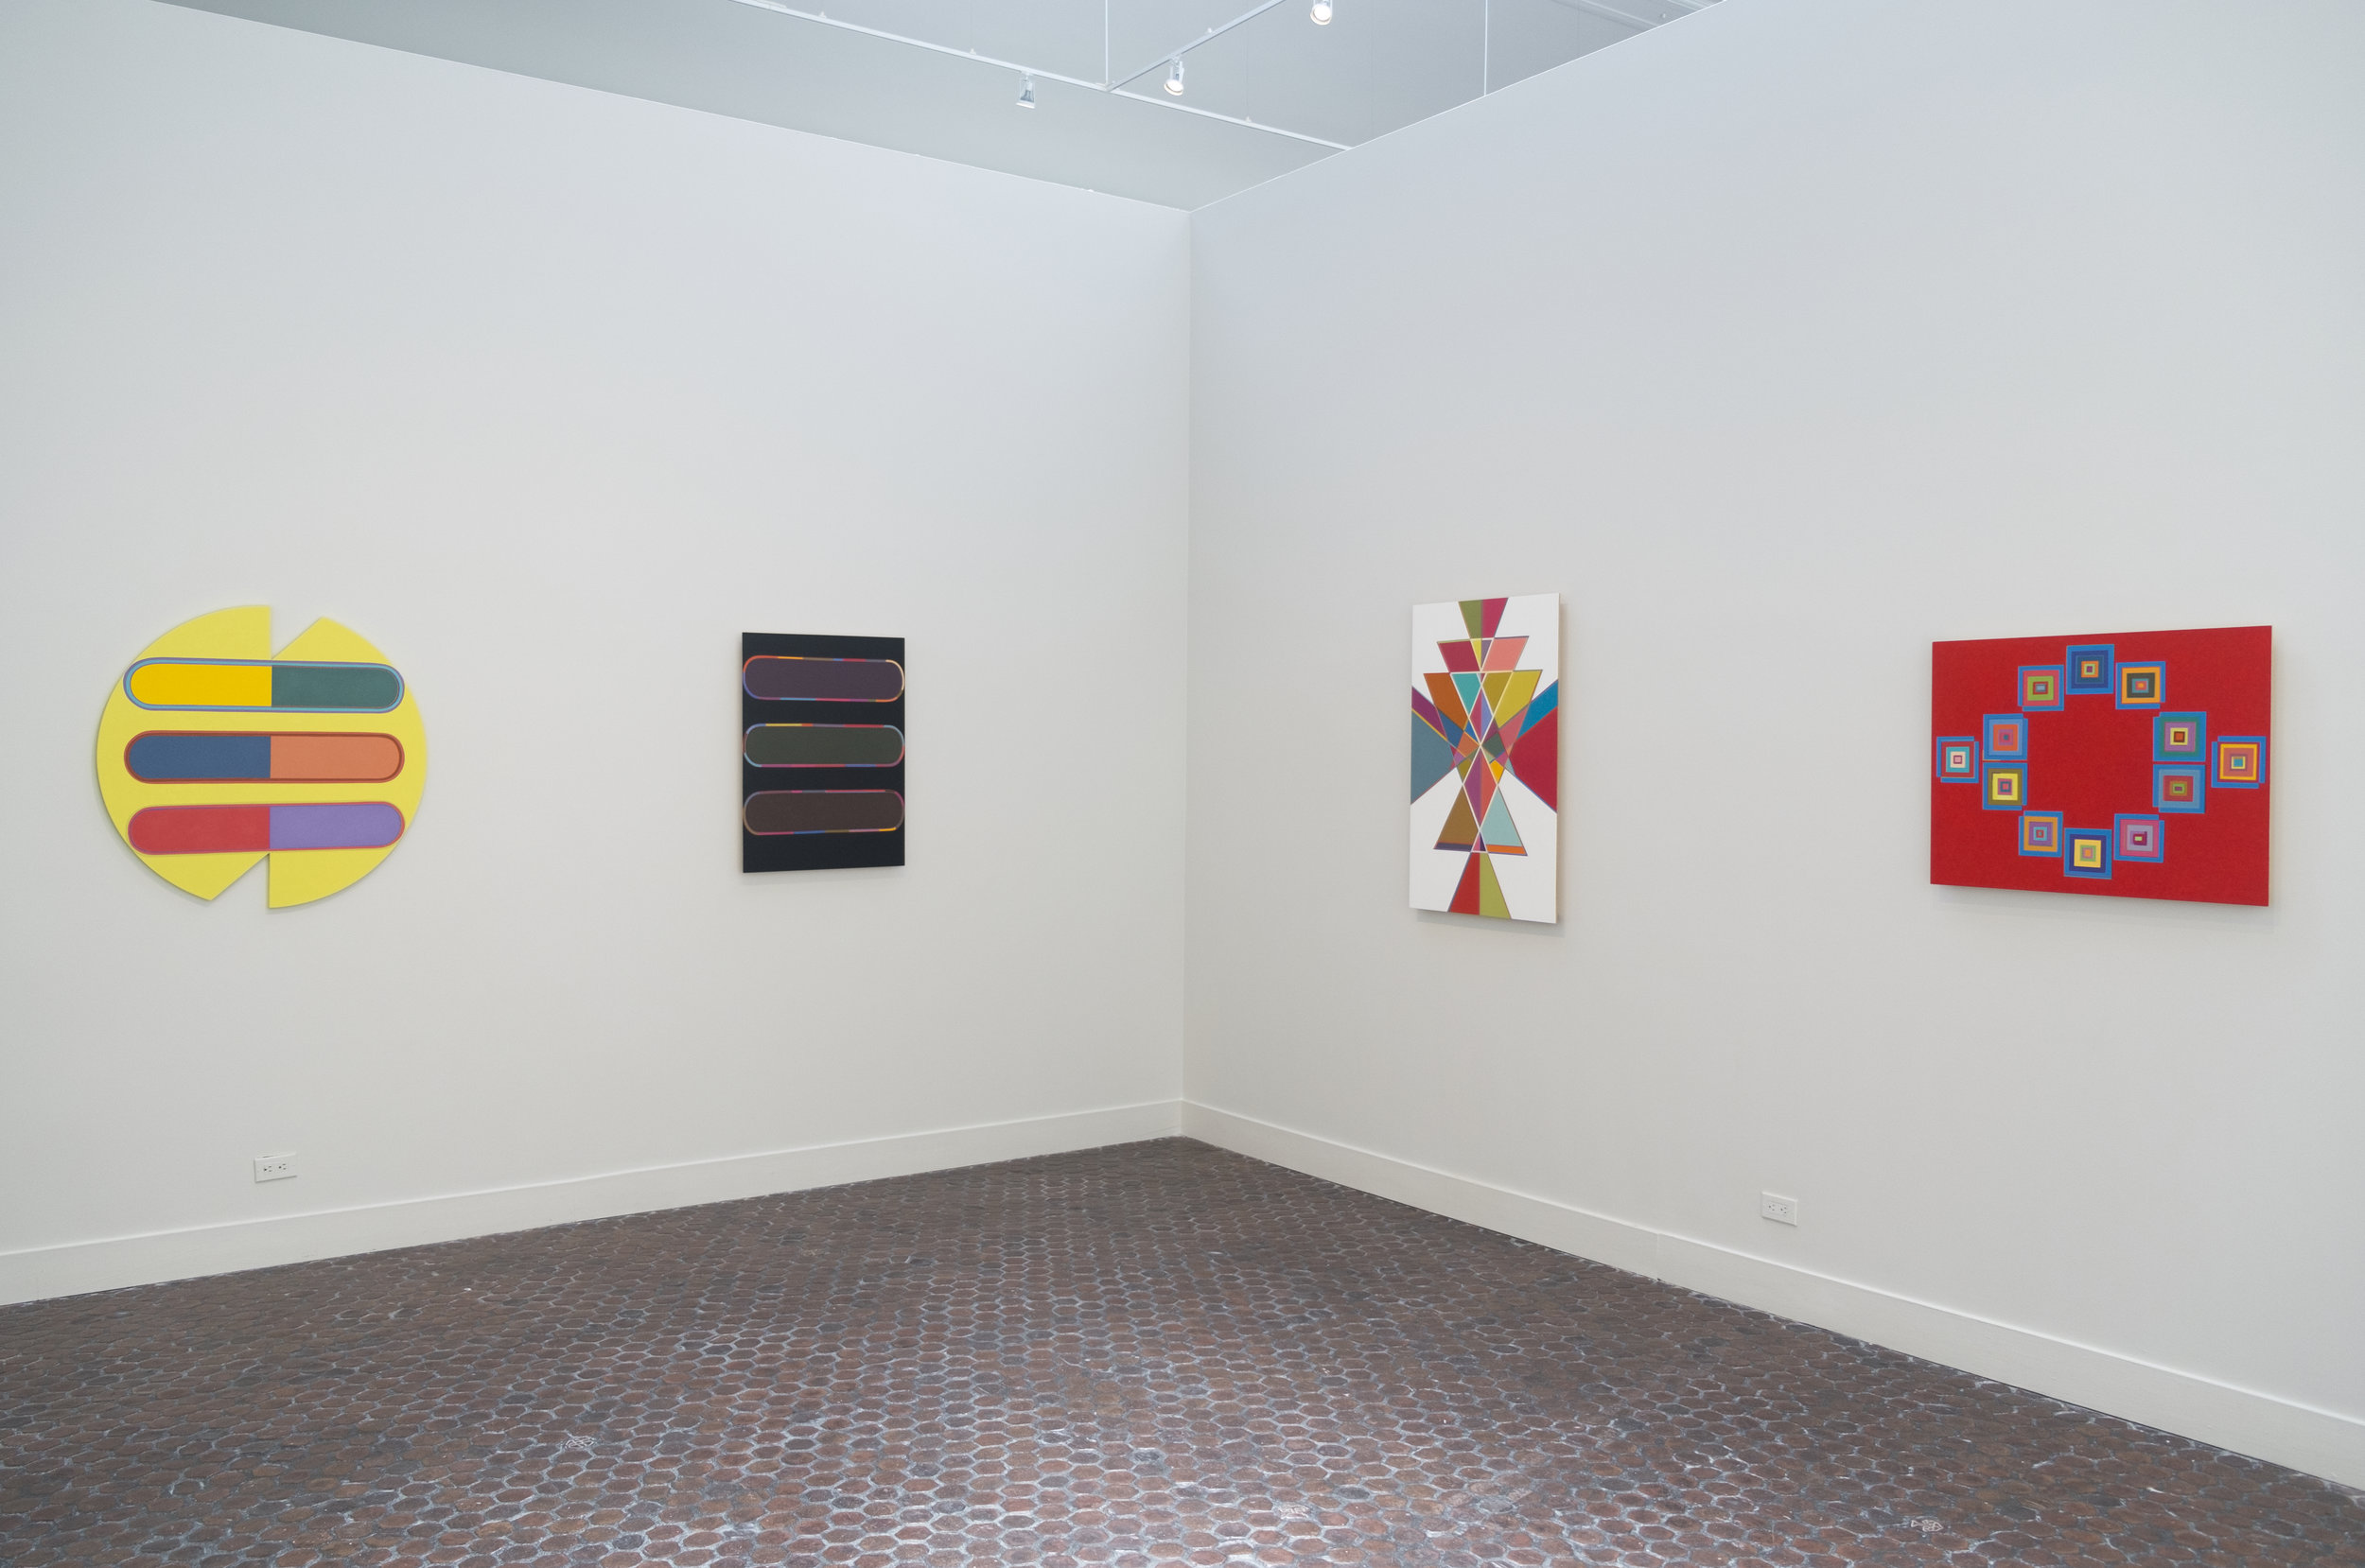 Installation view: American Academy of Arts and Letters, NYC.2017